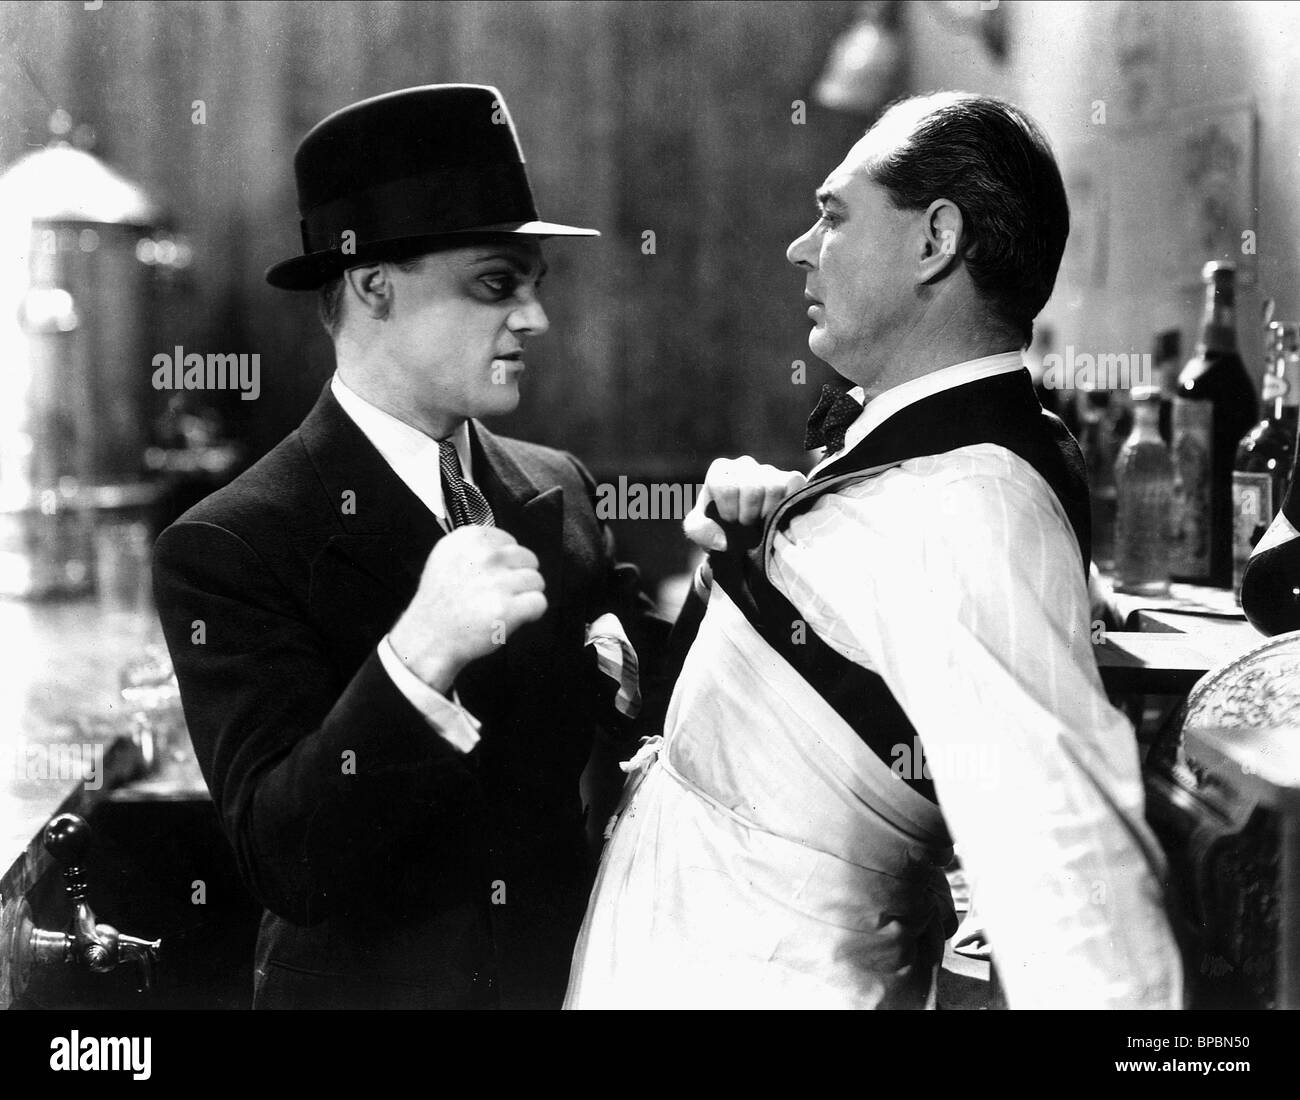 JAMES CAGNEY, LEE PHELPS, THE PUBLIC ENEMY, 1931 - Stock Image